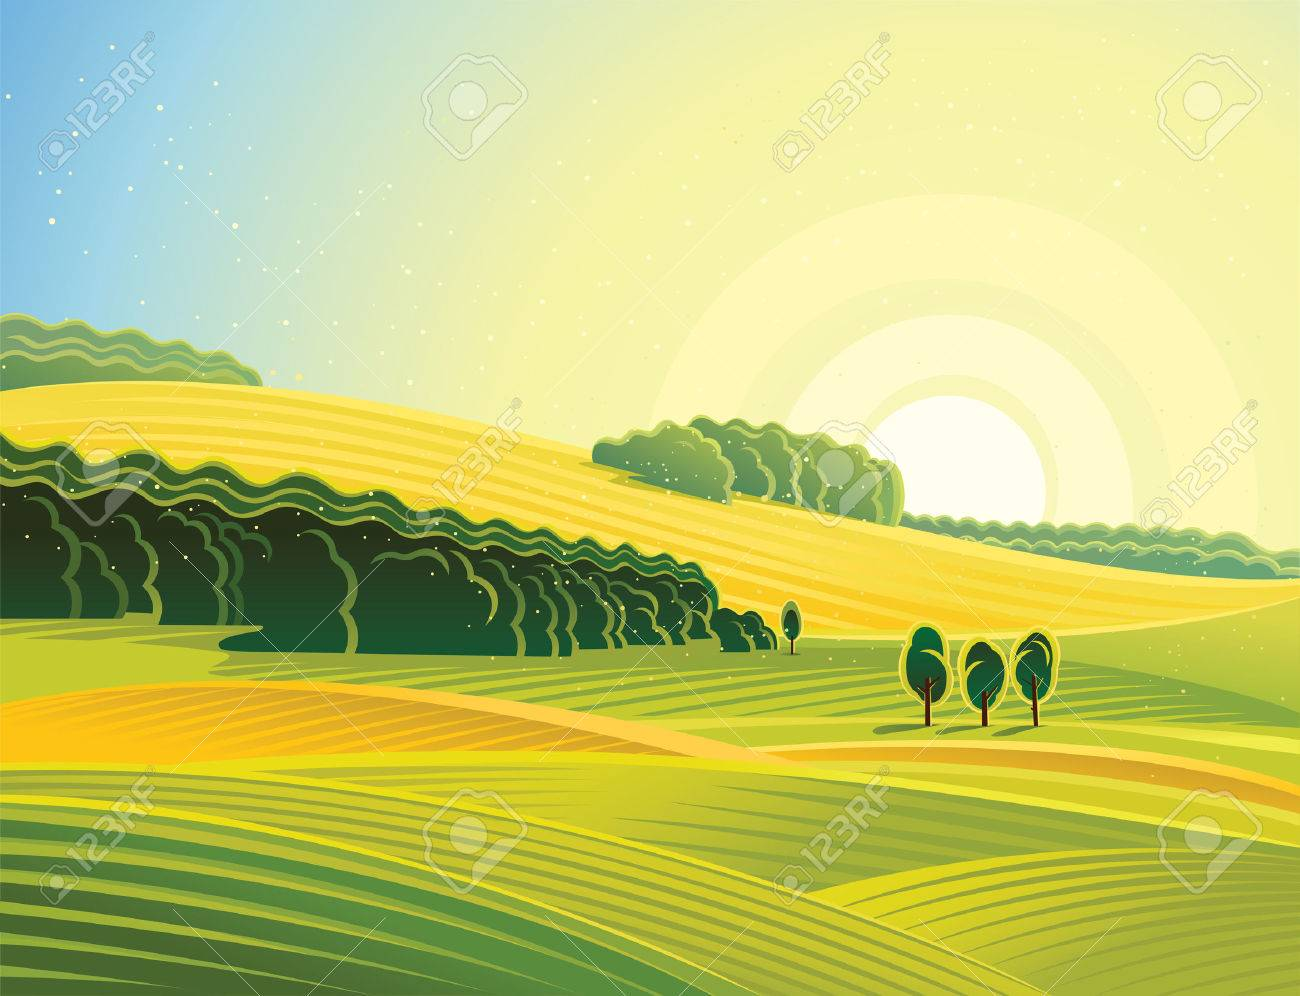 Rural landscape with field. Morning mood. - 53106208